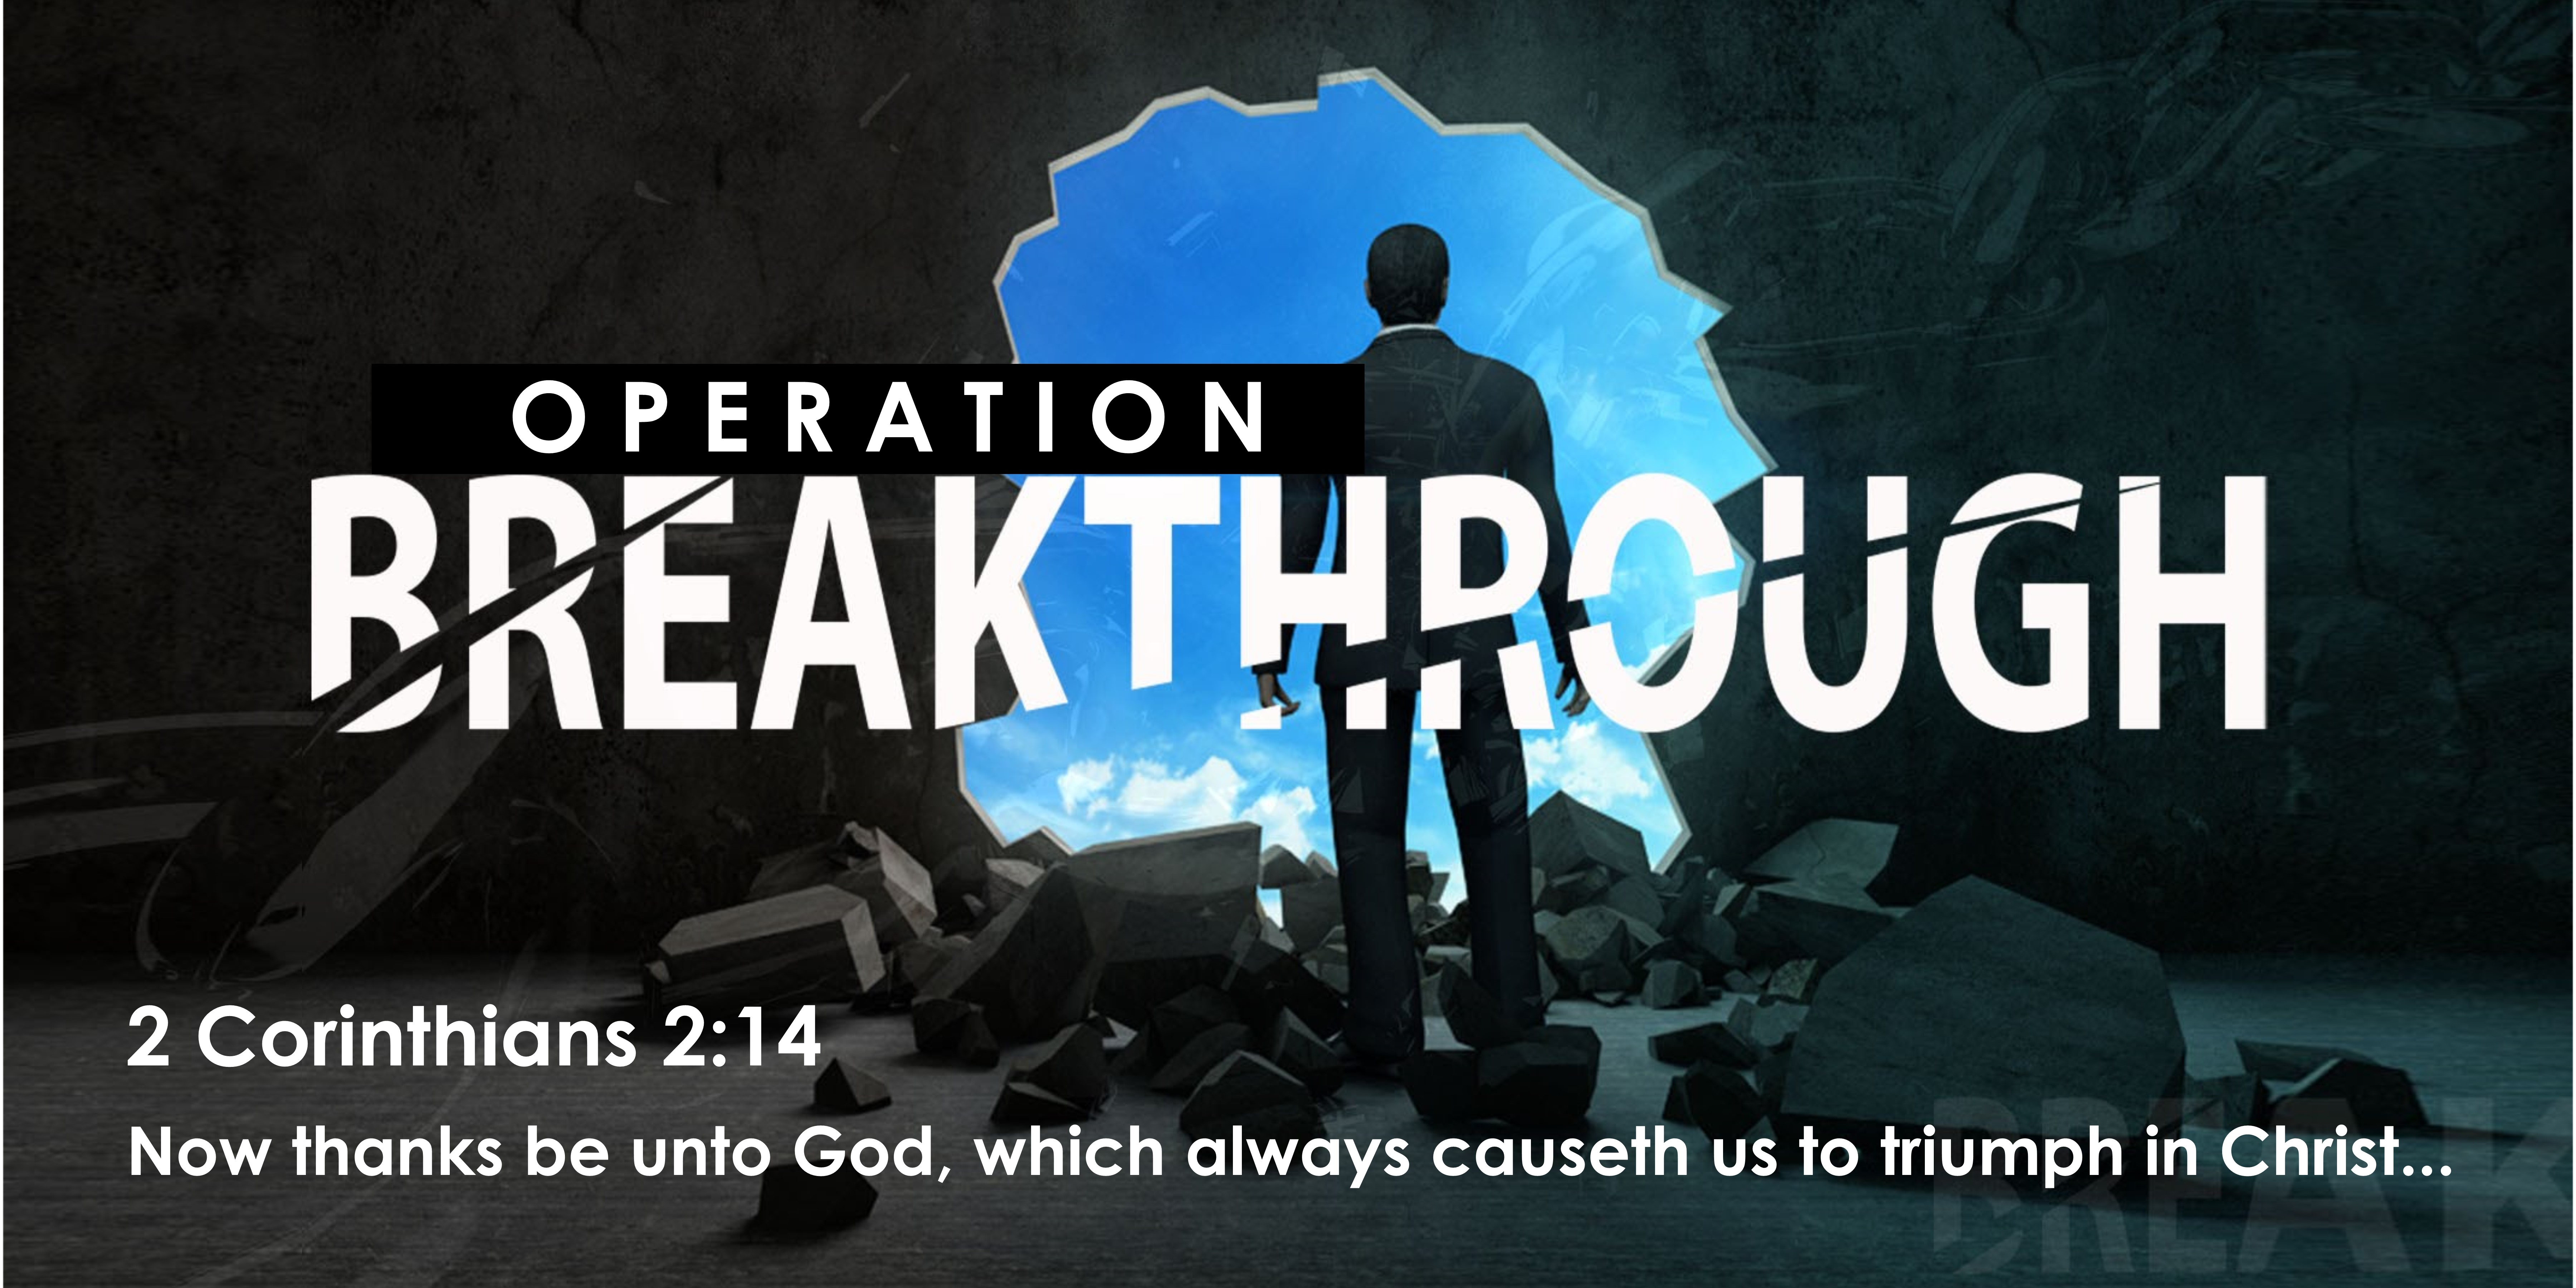 2018-year-motto-theme-for-church-Operation-Breakthrough